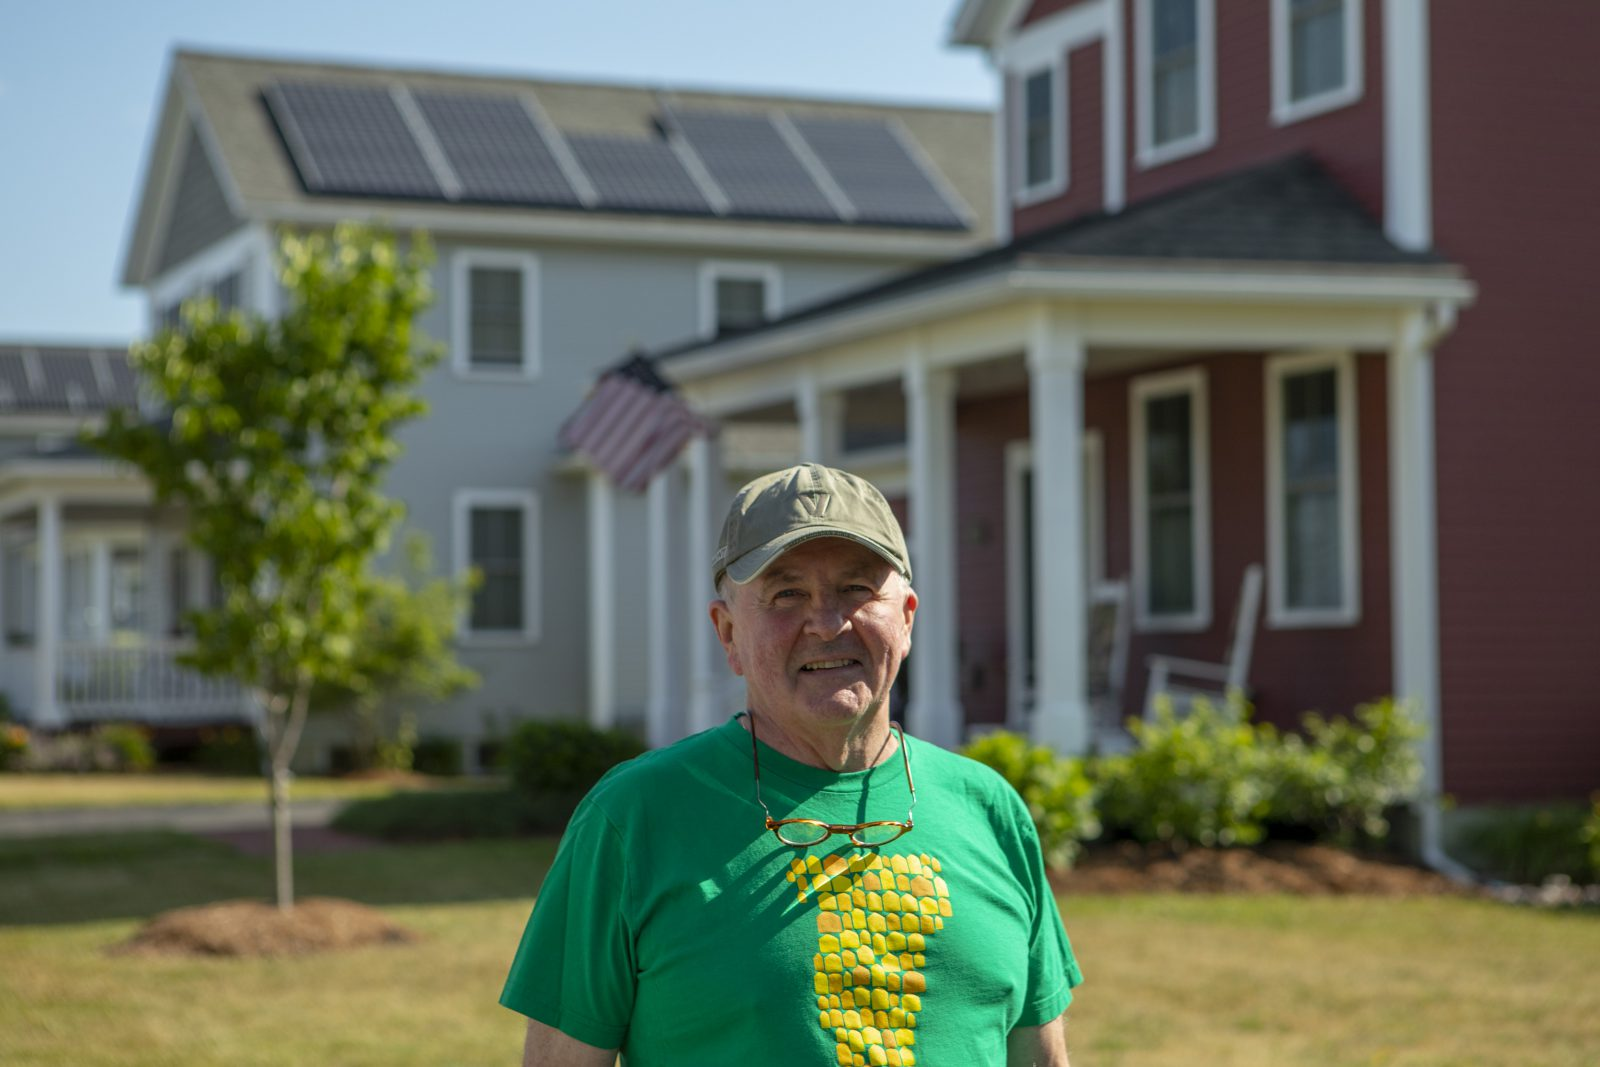 South Burlington Homeowner with Rooftop Solar